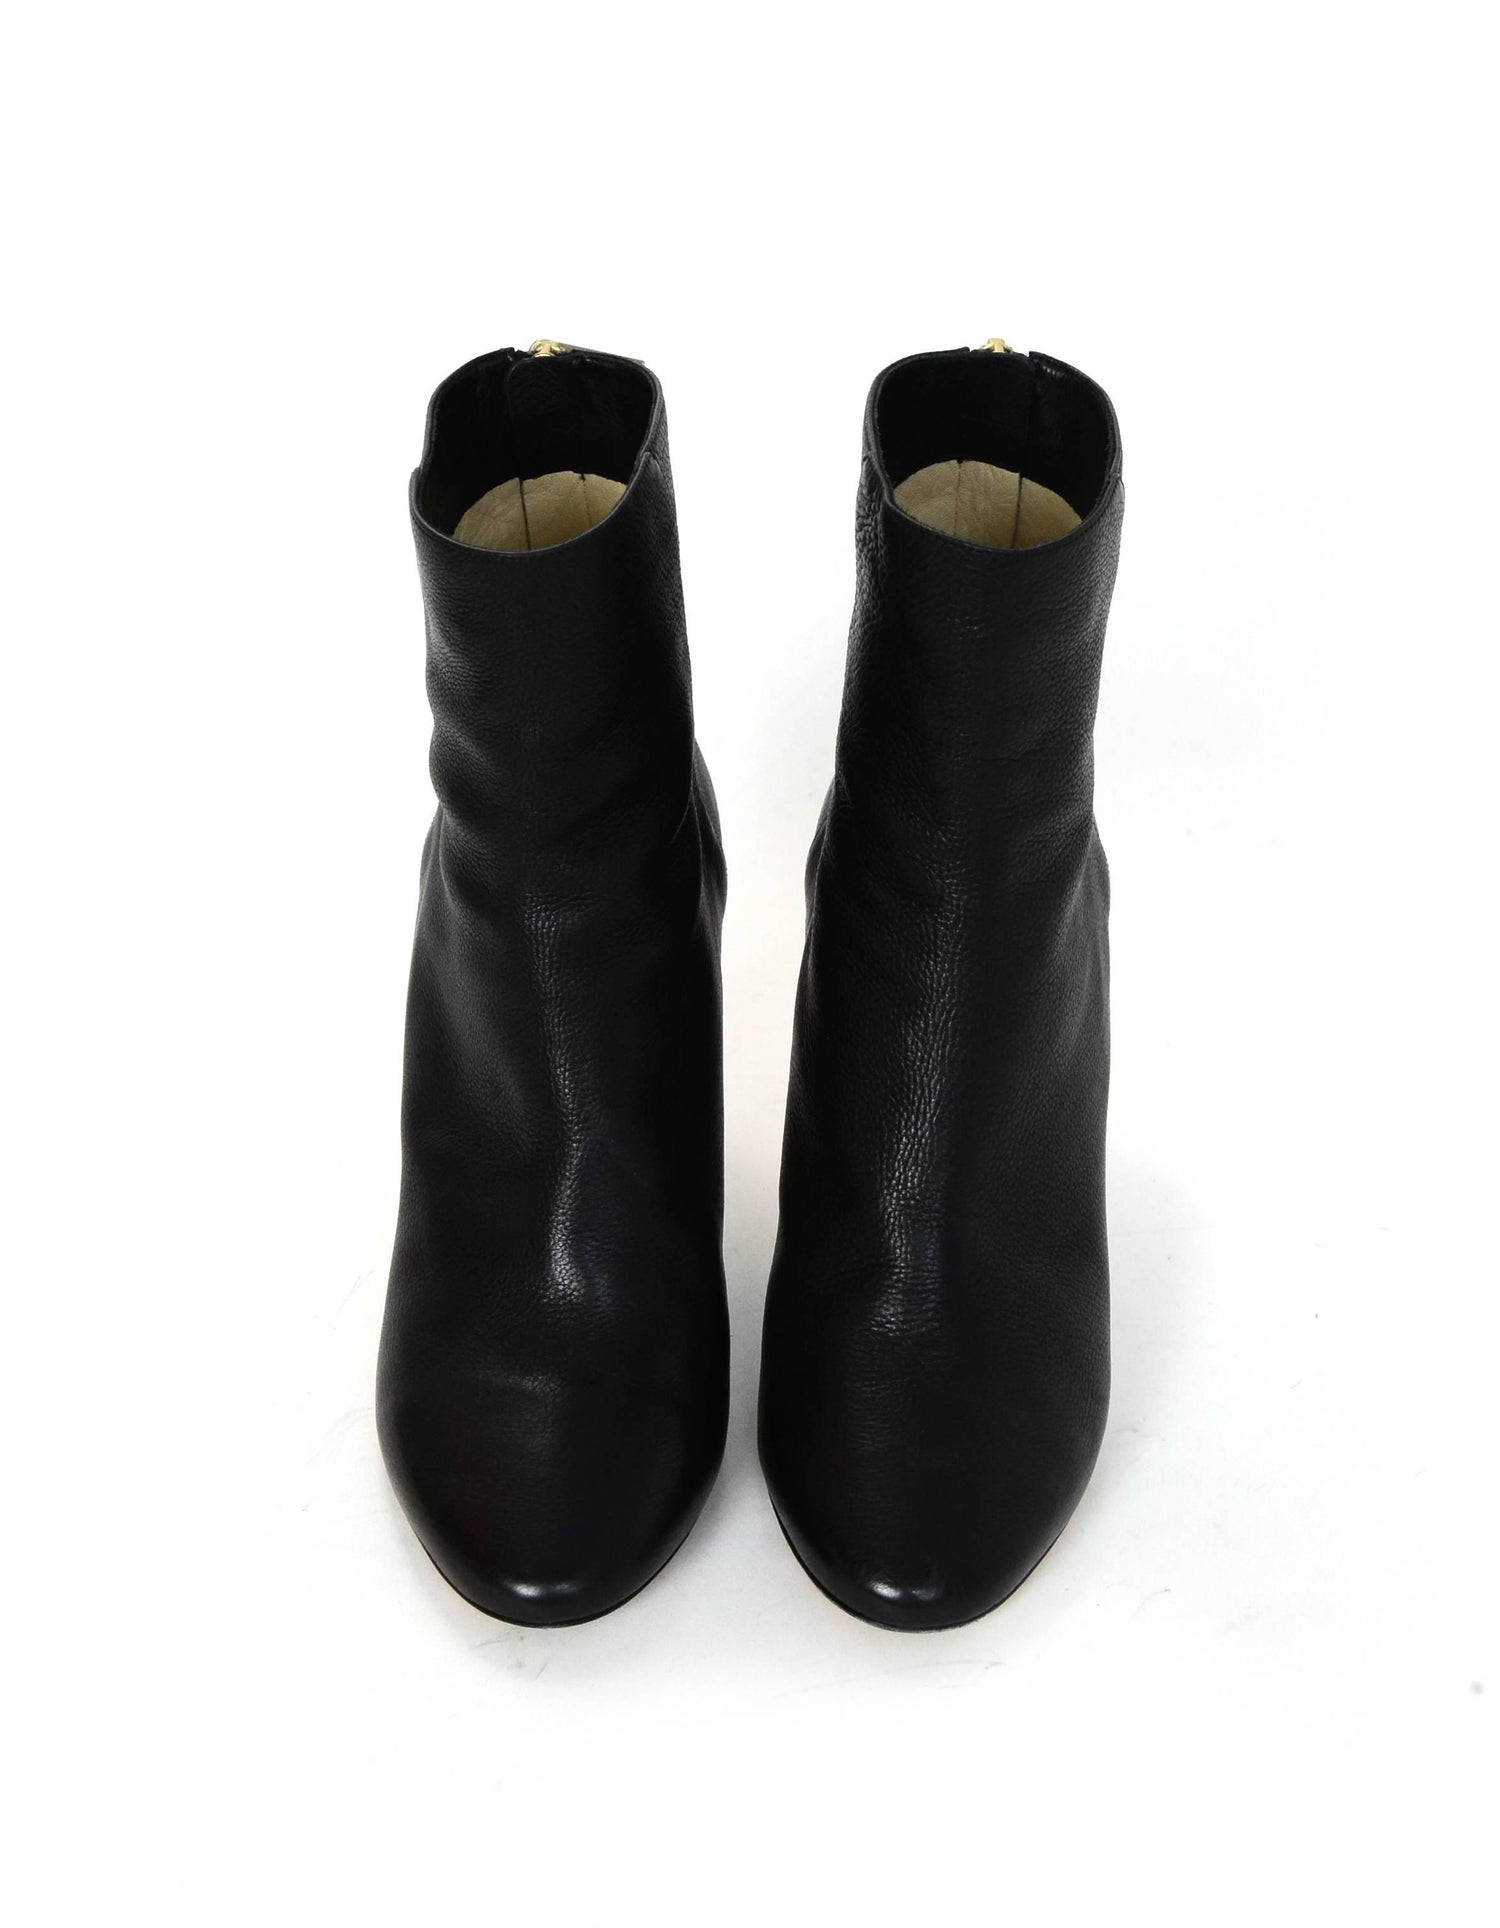 99a4e9a14dd0 Jimmy Choo Black Leather Duke 85 Ankle Boots Sz 38 For Sale at 1stdibs